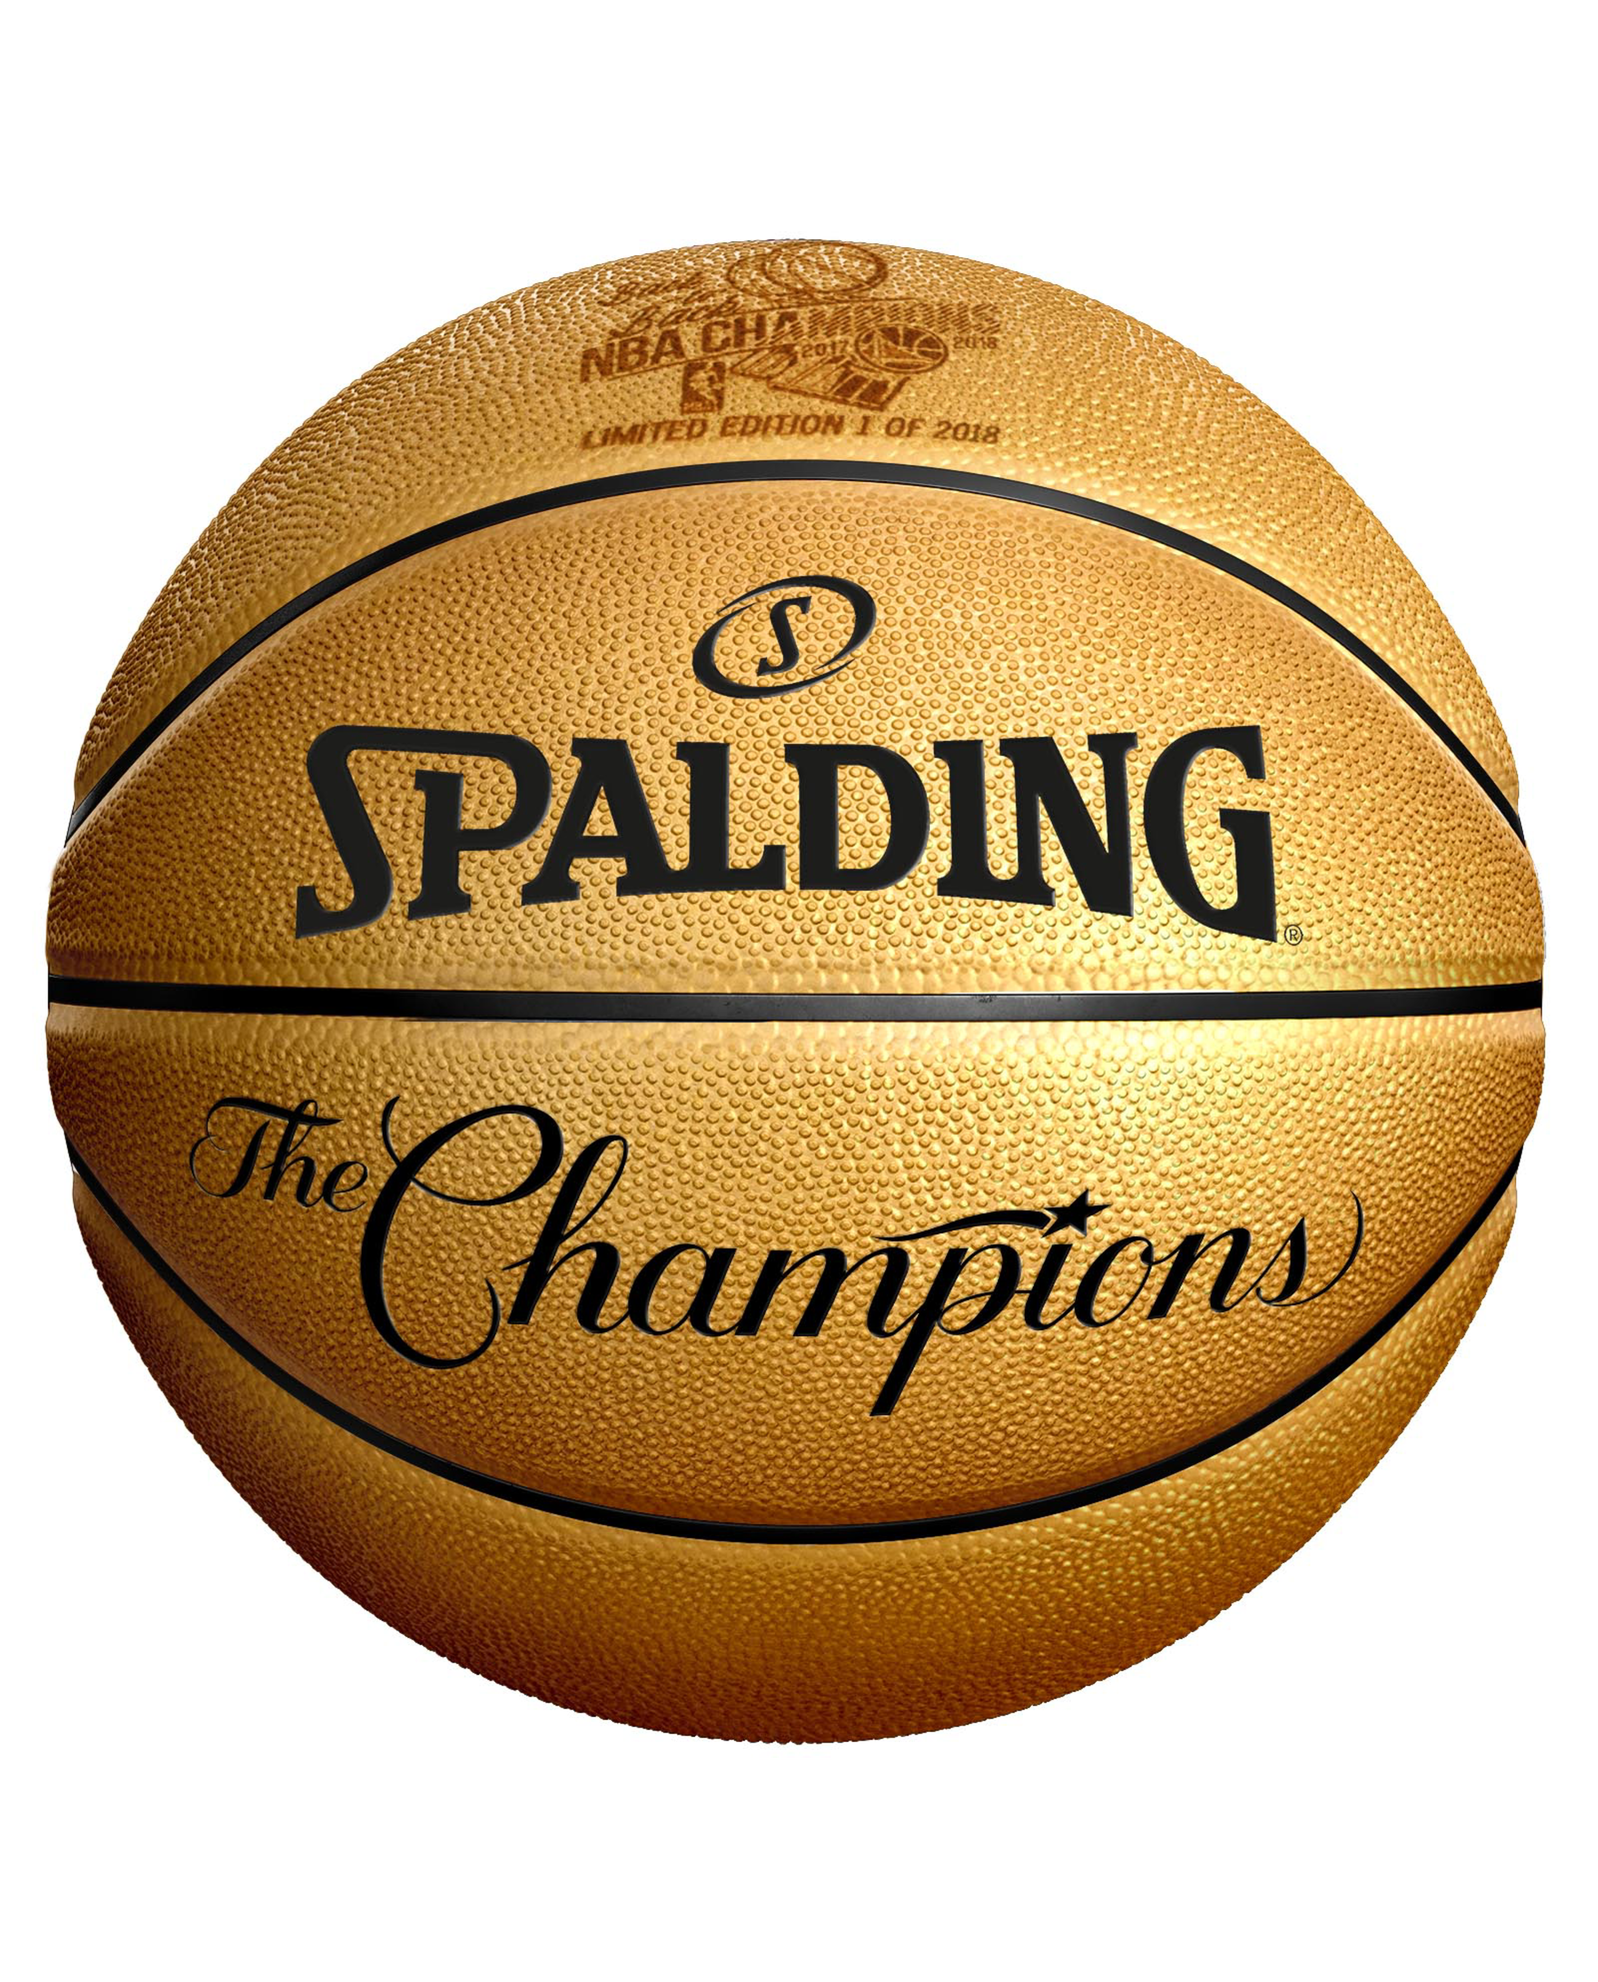 Spalding Releases Limited Edition Ball to Commemorate the Warriors Back-to-Back Championship Run